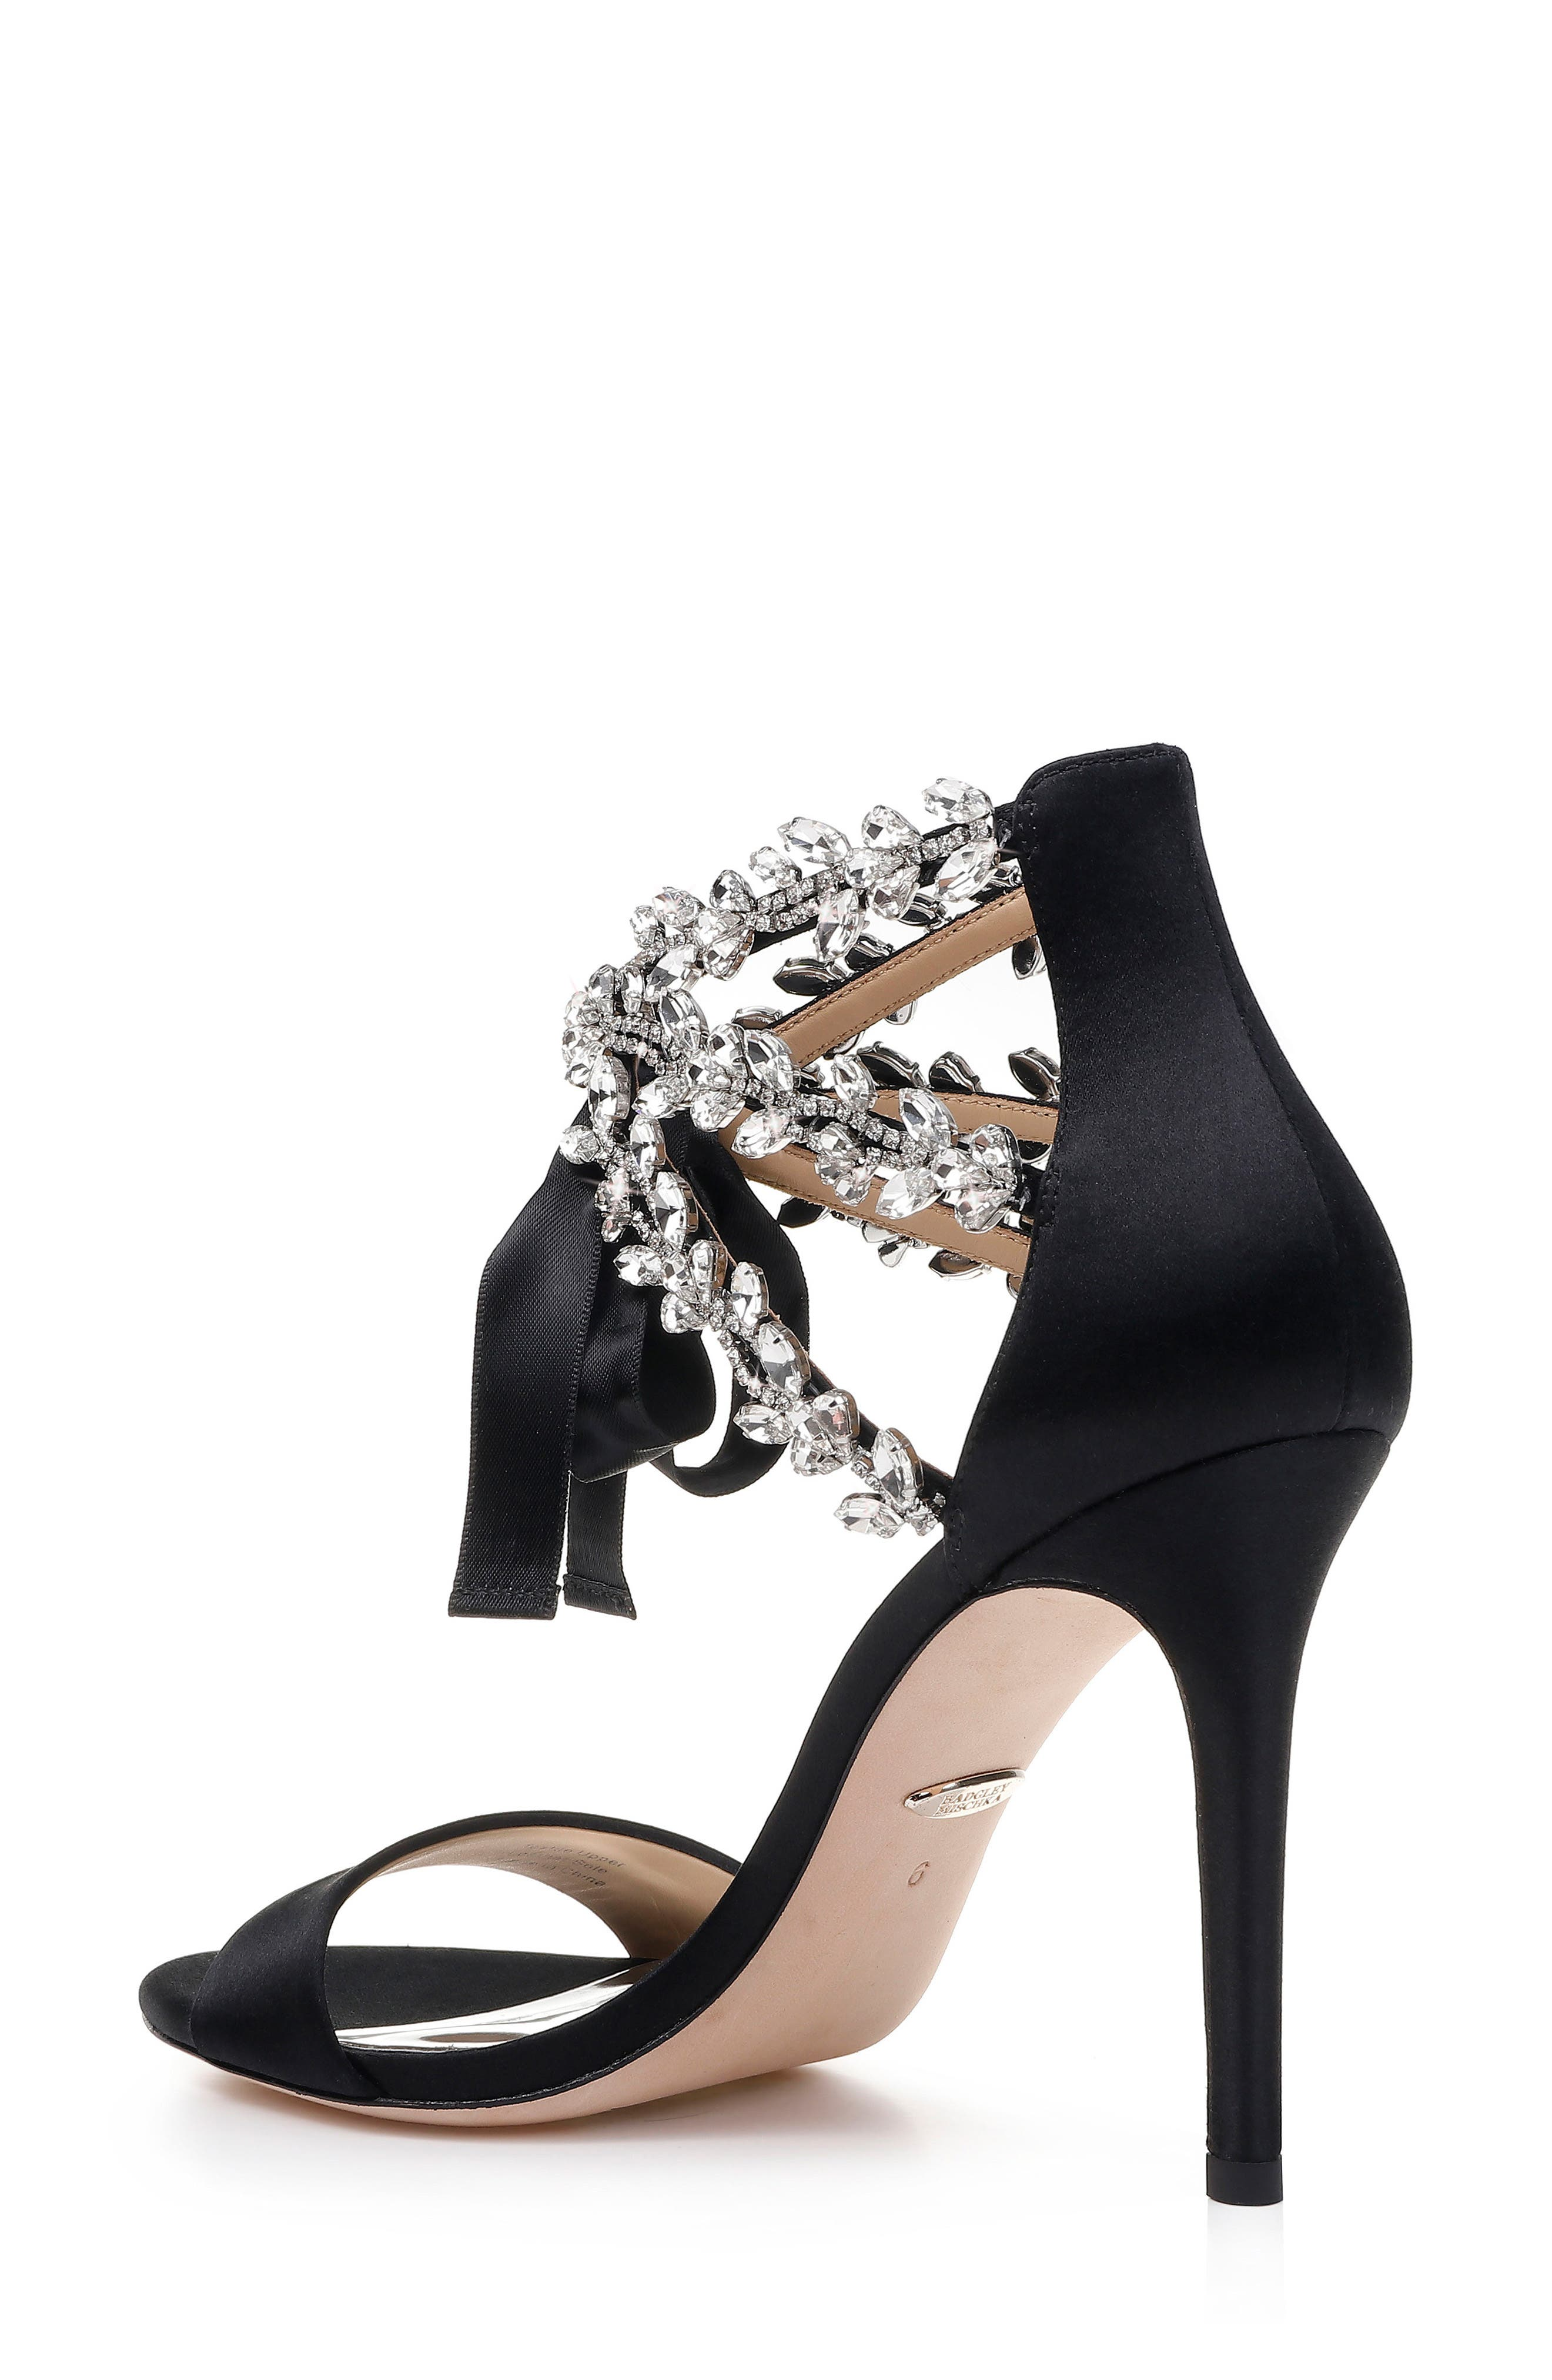 BADGLEY MISCHKA COLLECTION, Badgley Mischka Felicia Embellished Sandal, Alternate thumbnail 2, color, 015